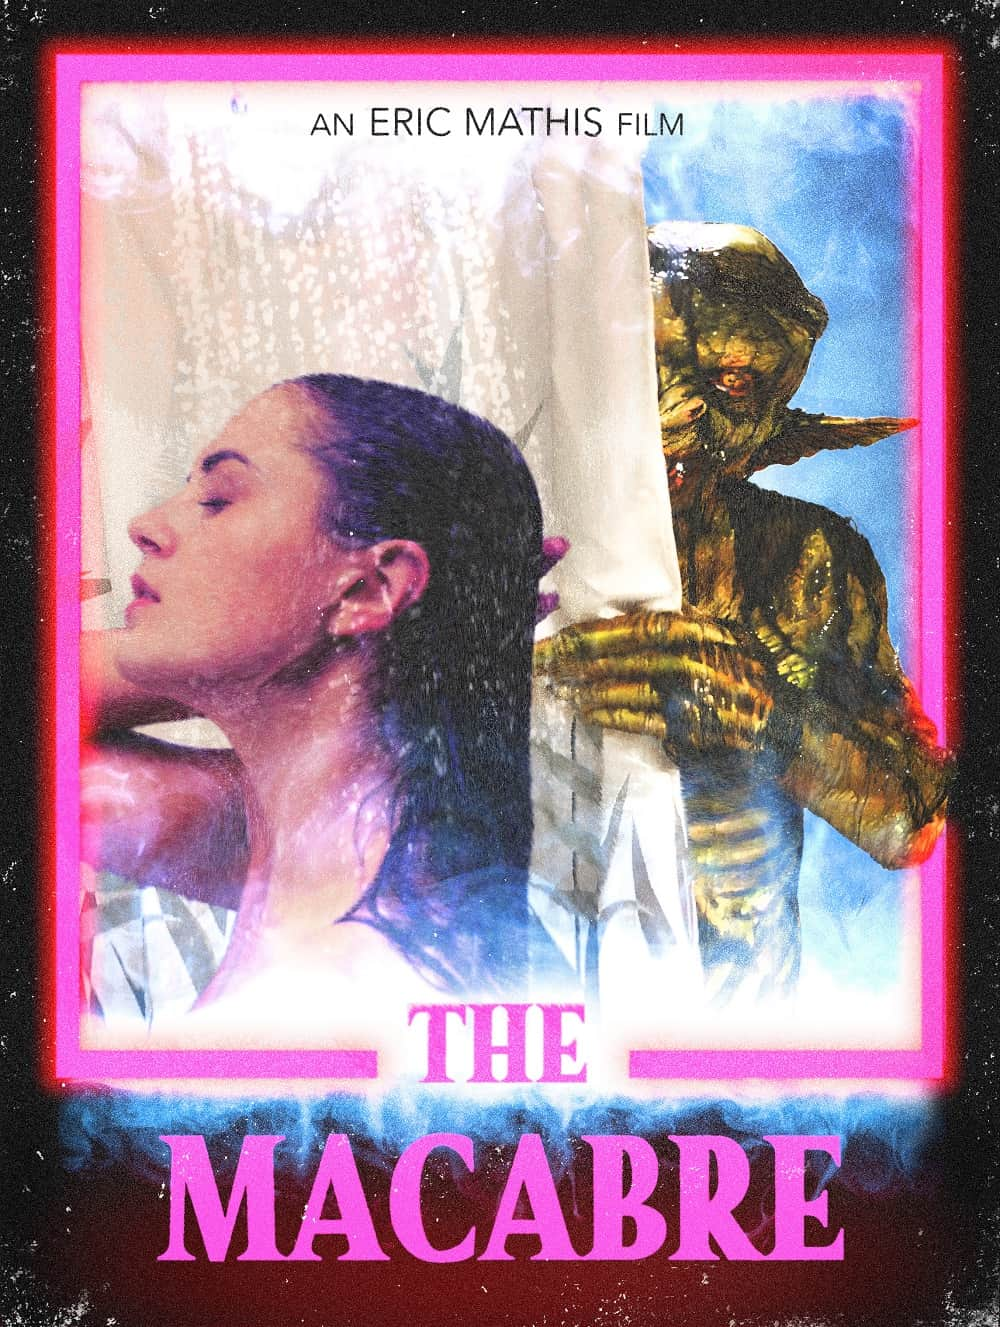 the macabre poster